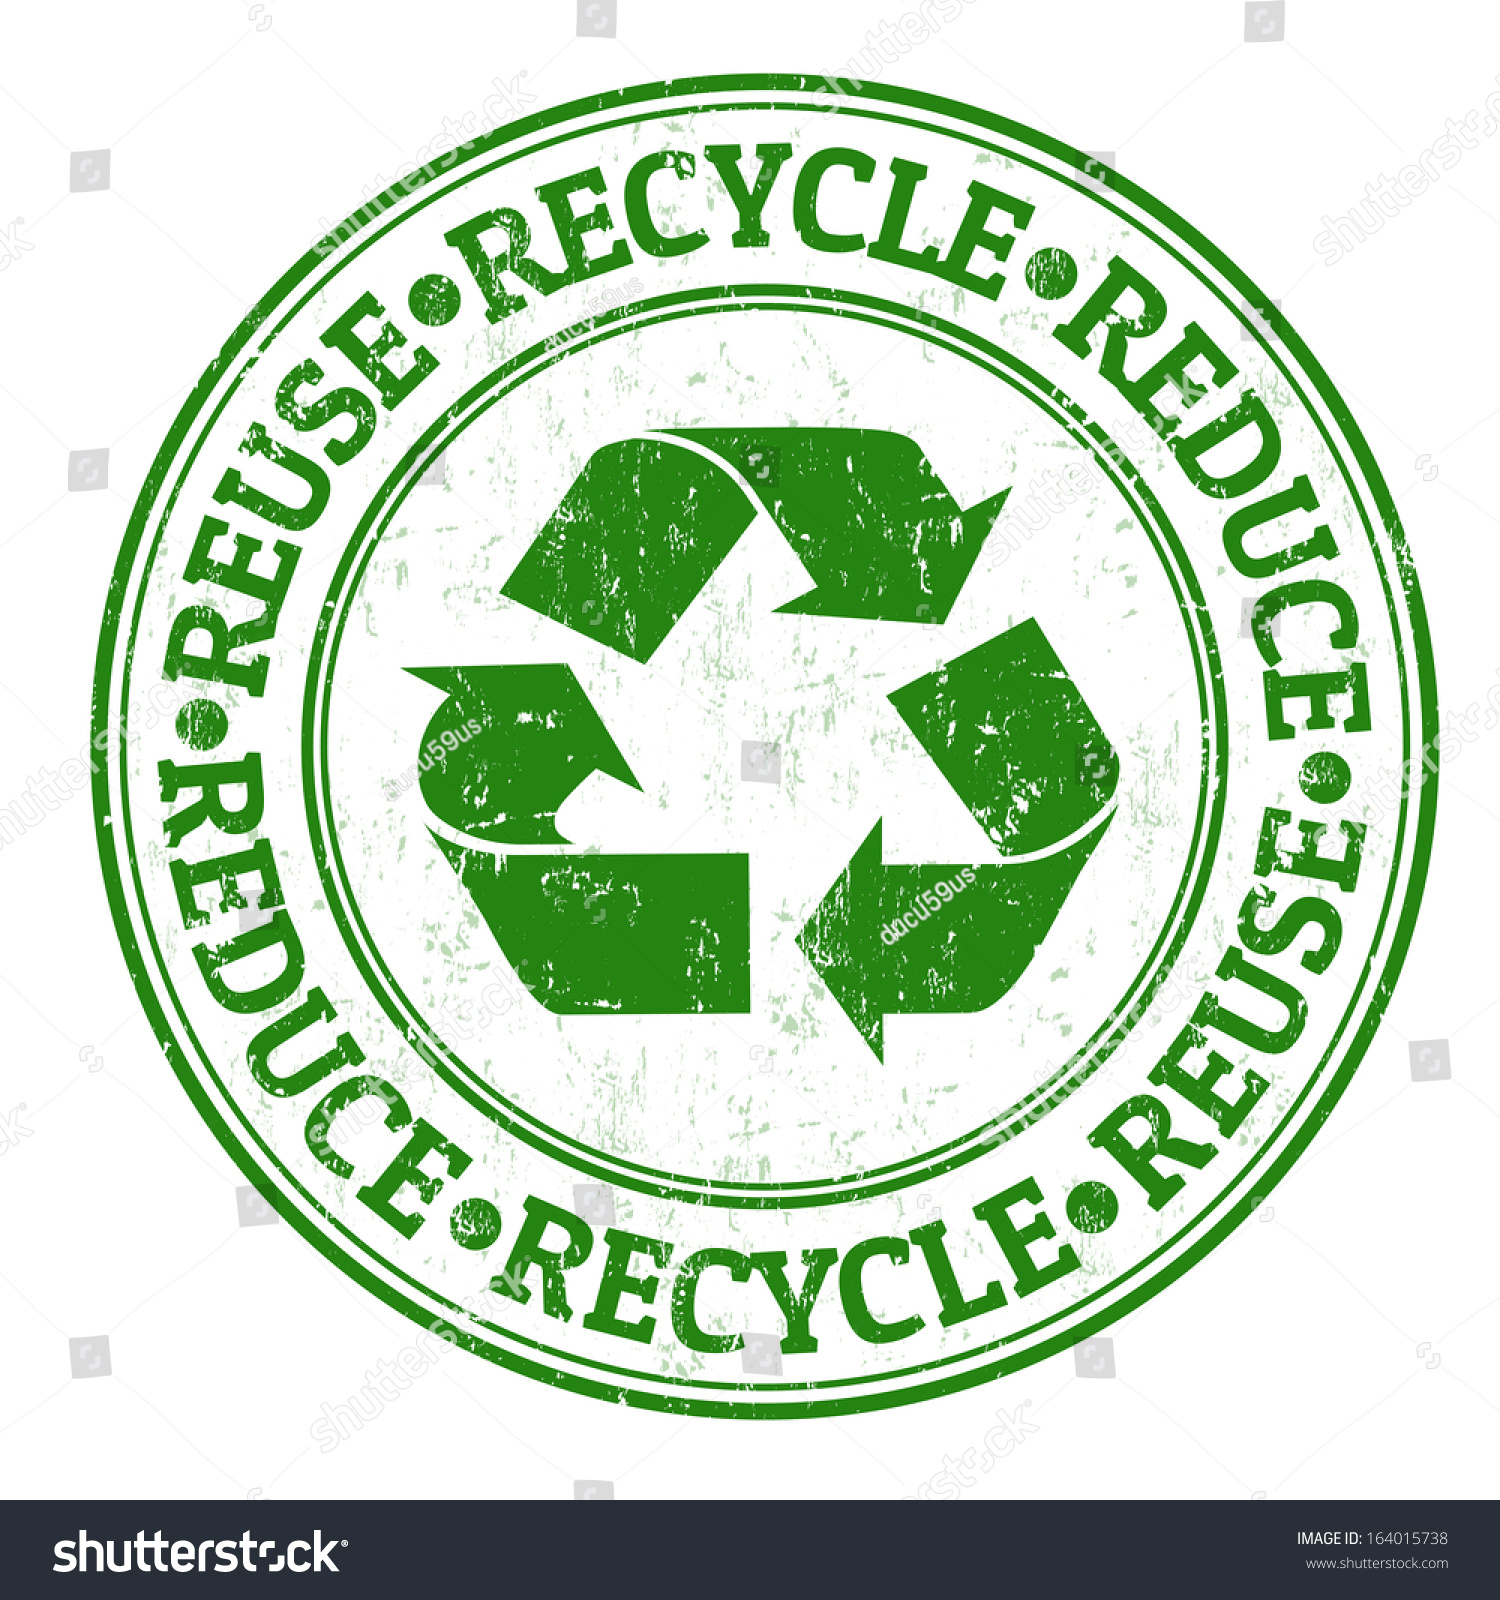 Free Reduce Reuse Recycle Worksheet